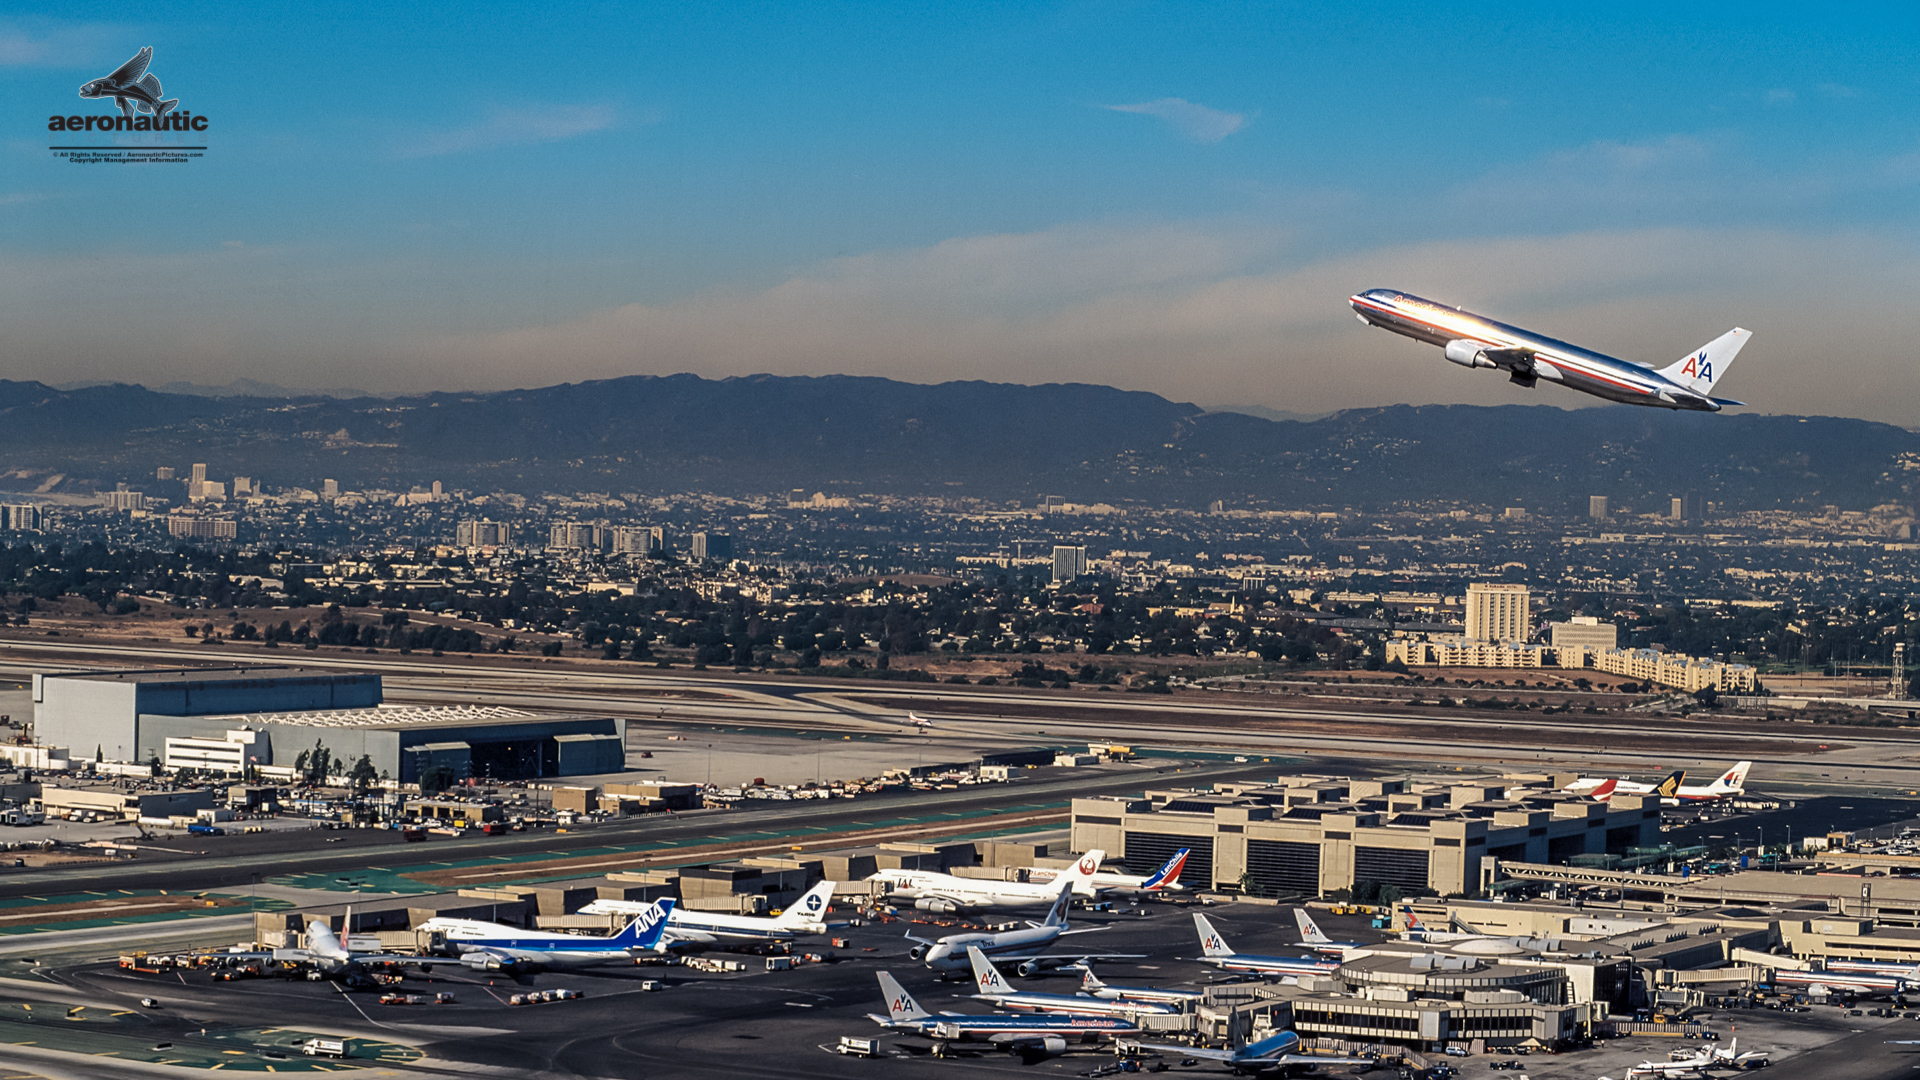 Los Angeles International Airport Aerial View LAX